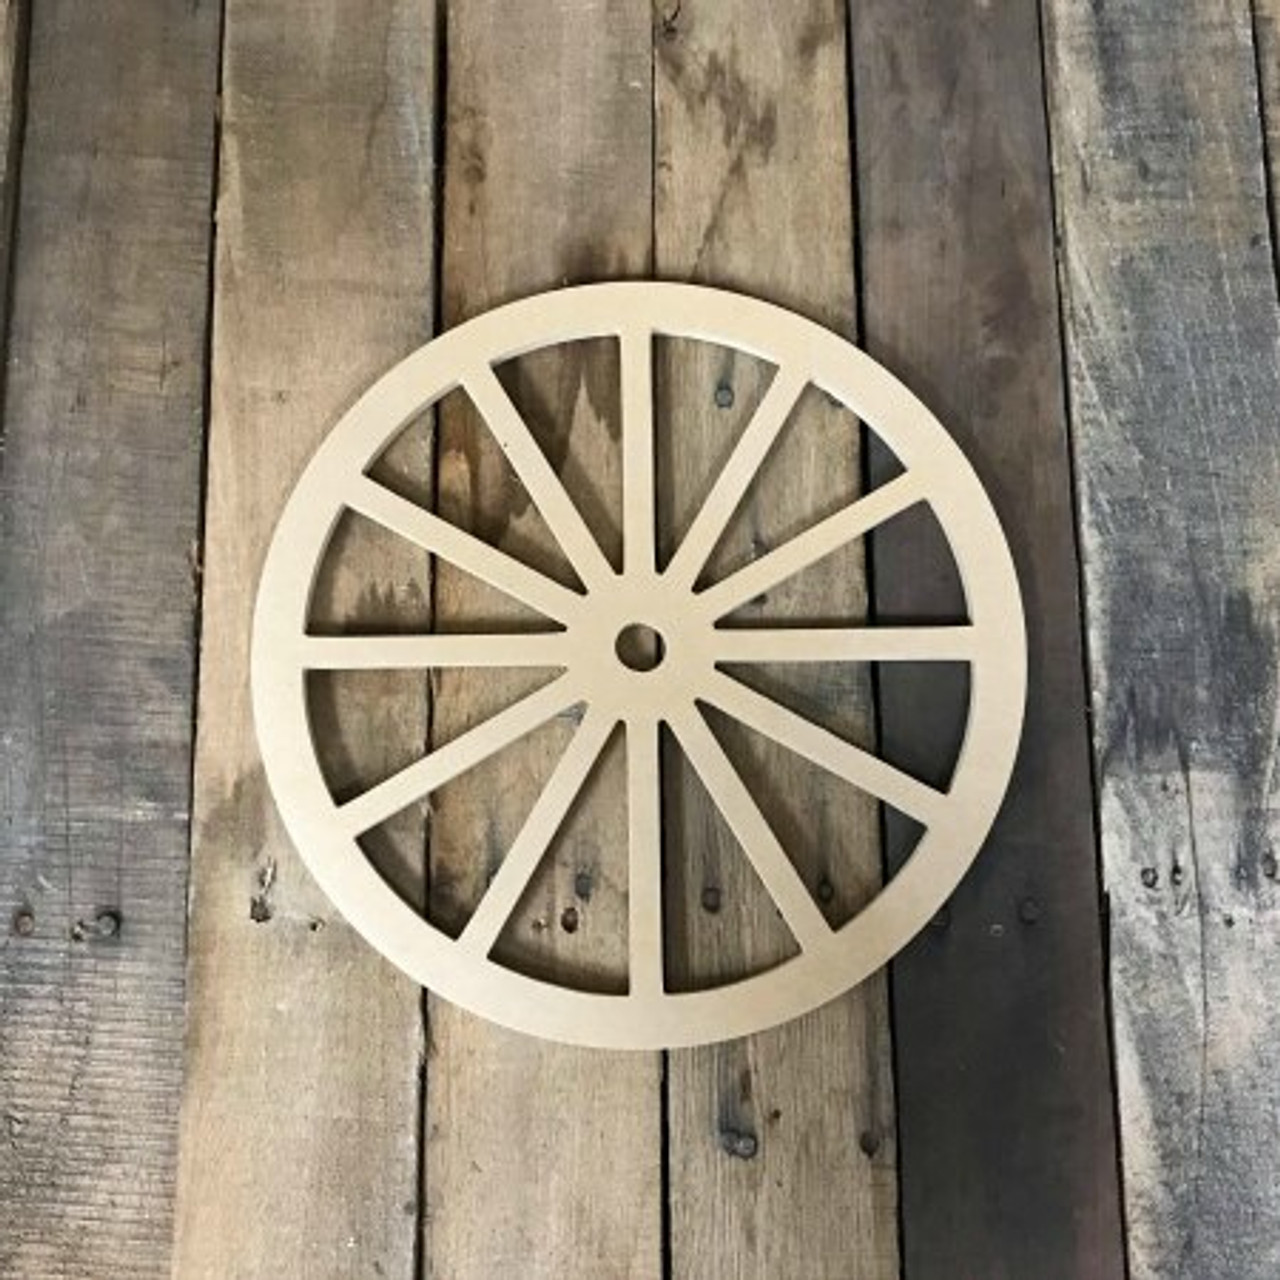 Wooden Wagon Wheel Unfinished Wooden Wagon Cut Out Craft